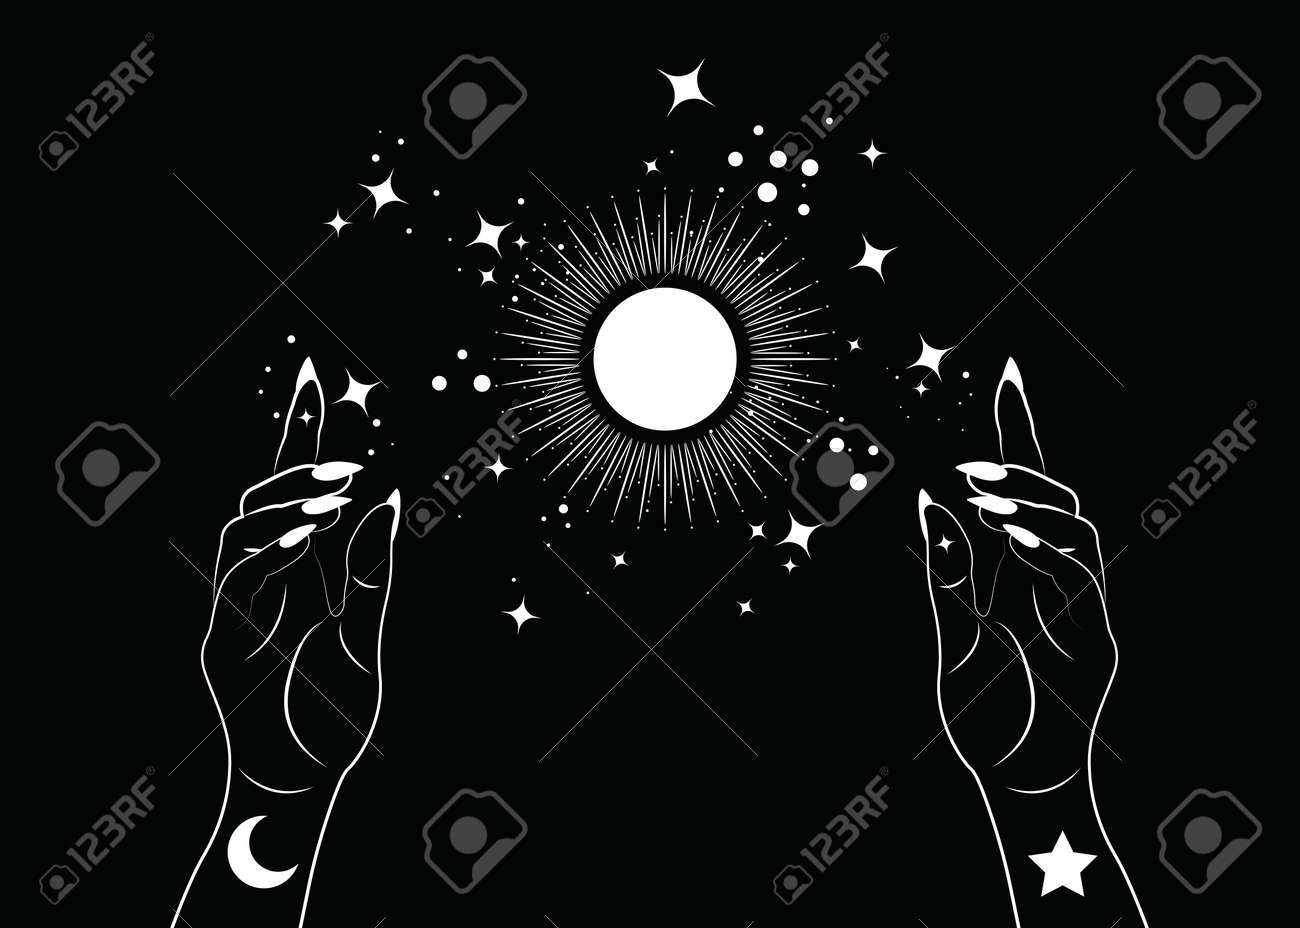 Mystical Woman Hands alchemy esoteric magic sun symbol, Sacred Geometry. Boho style Logo in white outline tattoo icon. Spiritual occultism mystic wicca sign. Vector template isolated on black - 173302426